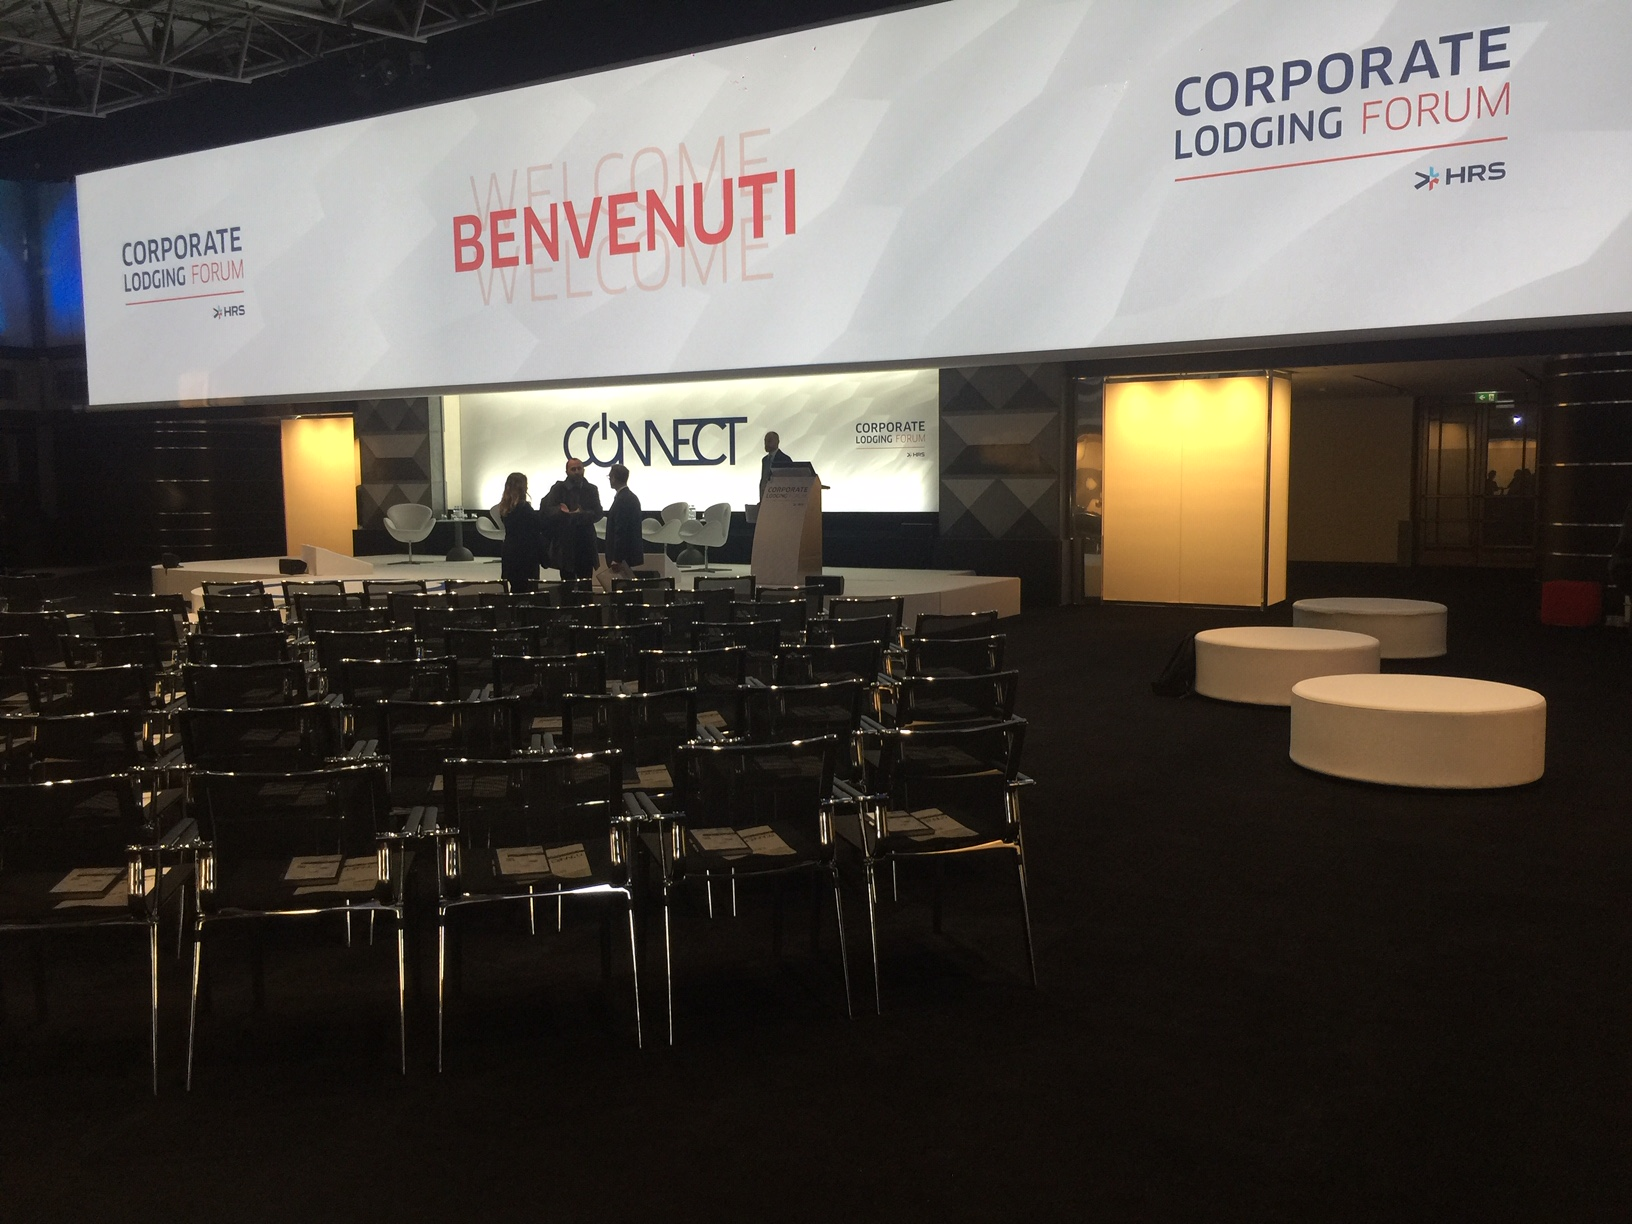 HRS Corporate Lodging Forum 2019 Milano